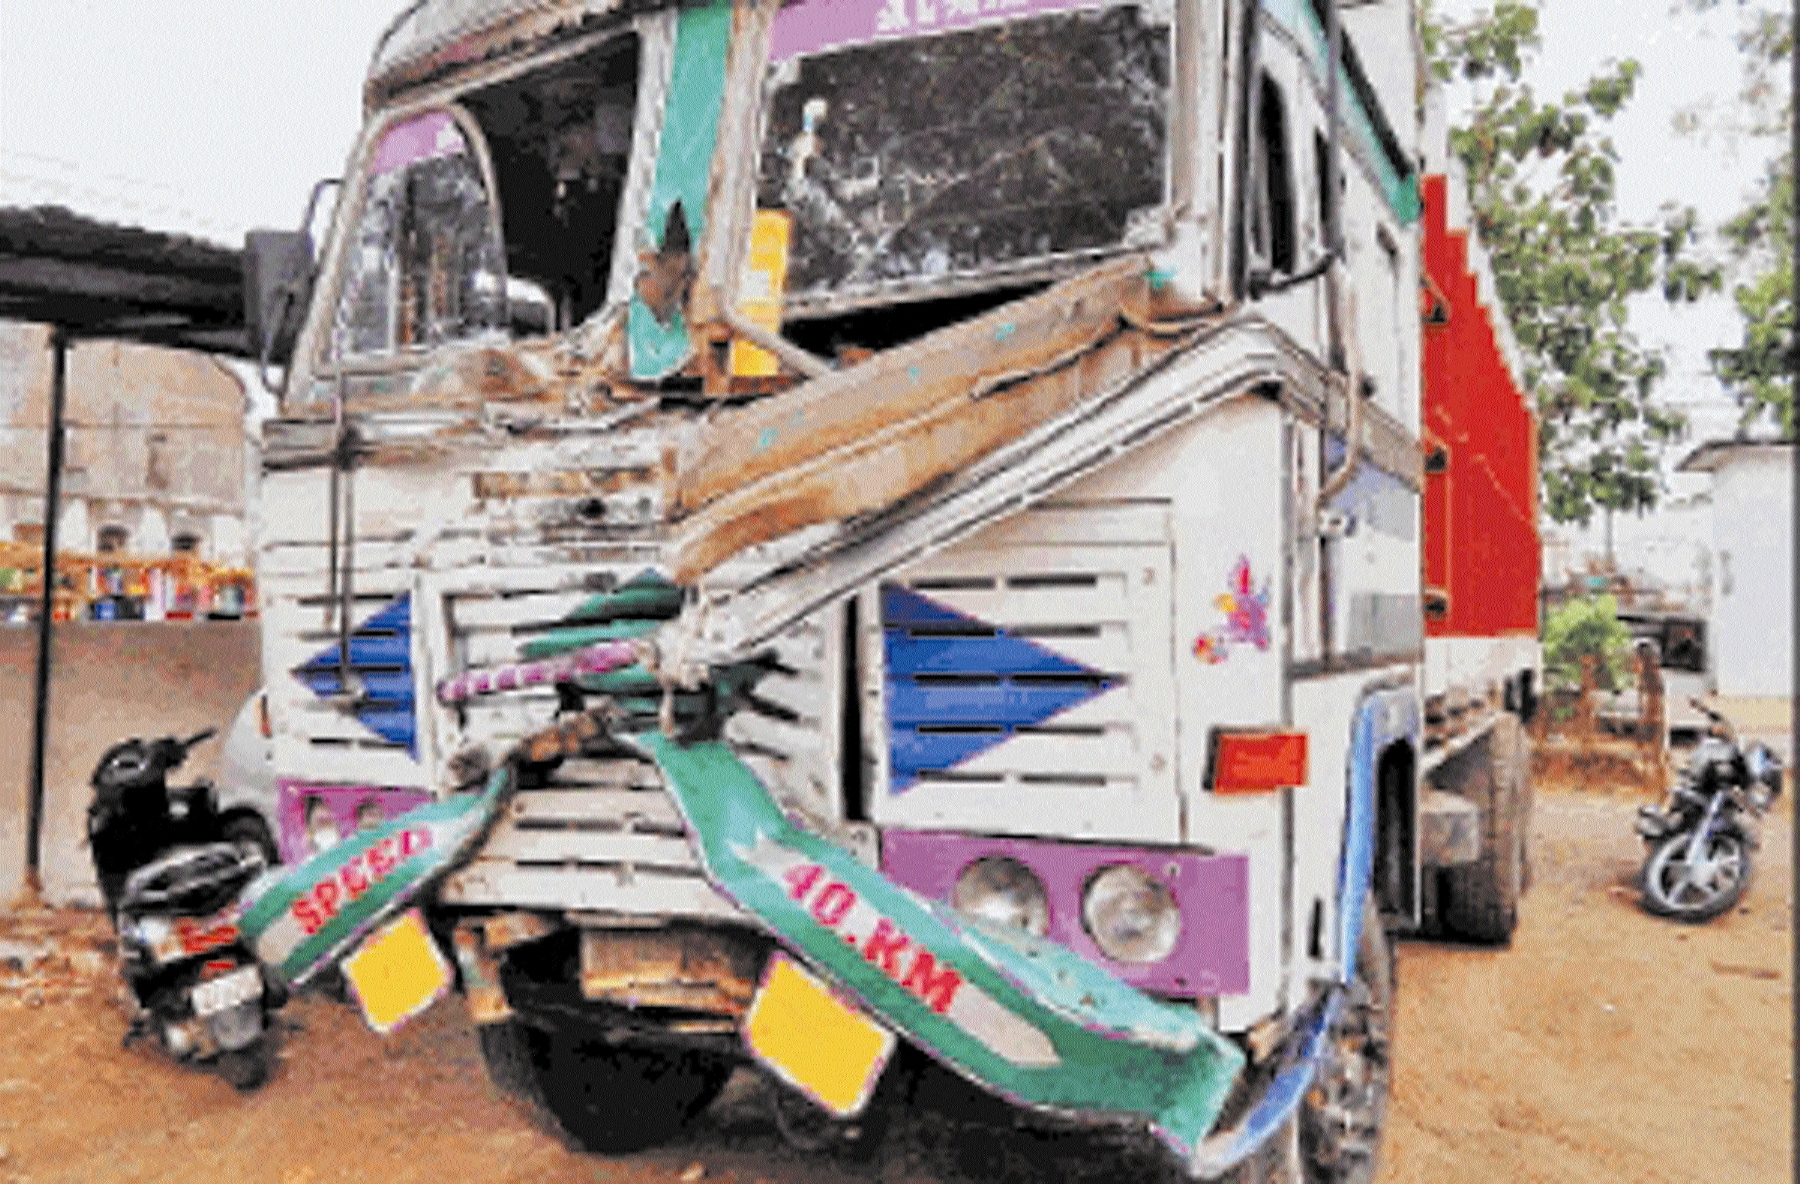 33 cattle rescued from truck, nine found dead